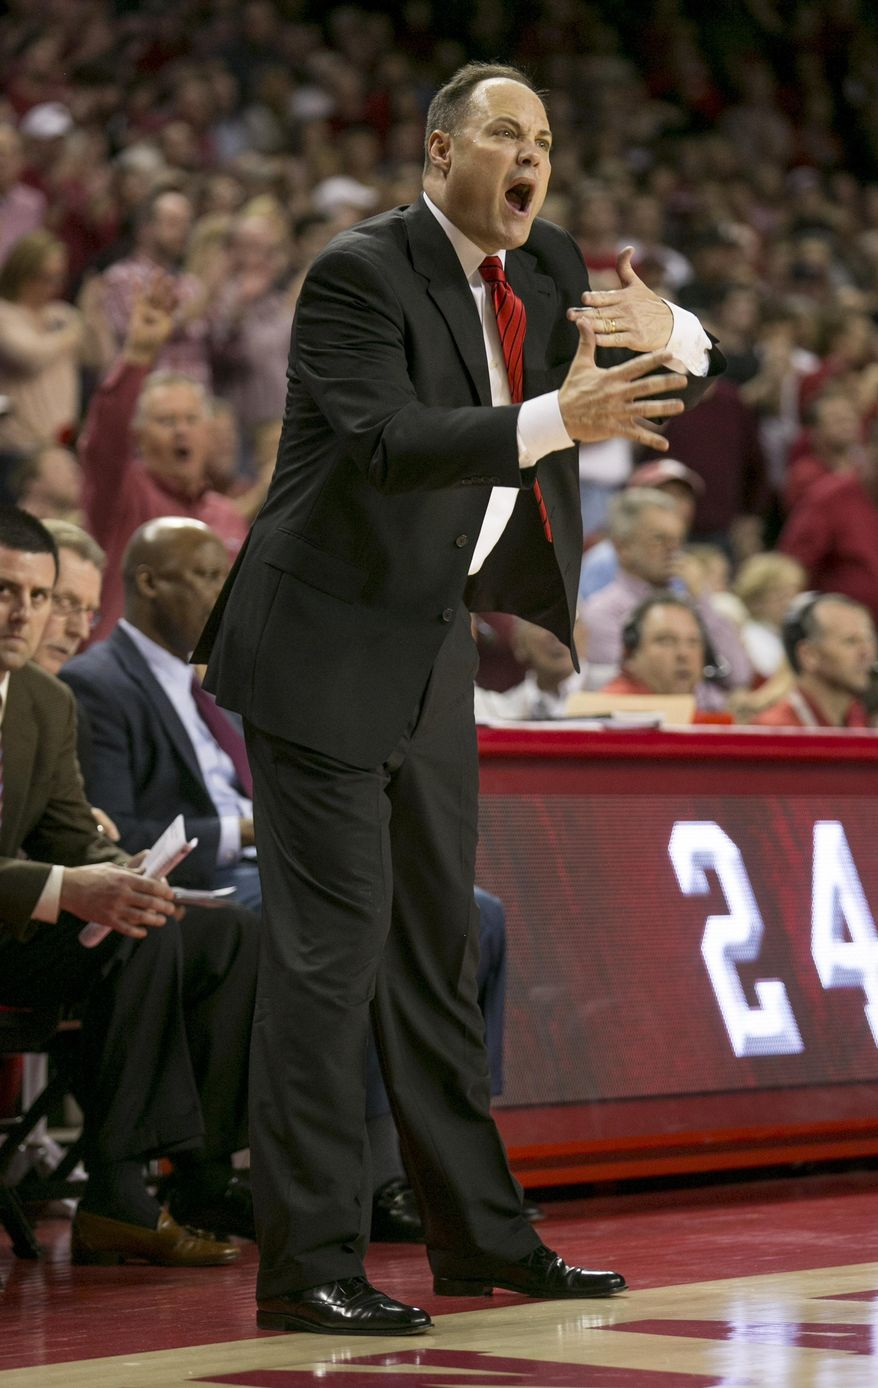 Georgia head coach Frank Martin yells at the referee about a foul call during the first half of an NCAA college basketball game against Arkansas on Saturday, March 1, 2014, in Fayetteville, Ark. (AP Photo/Gareth Patterson)